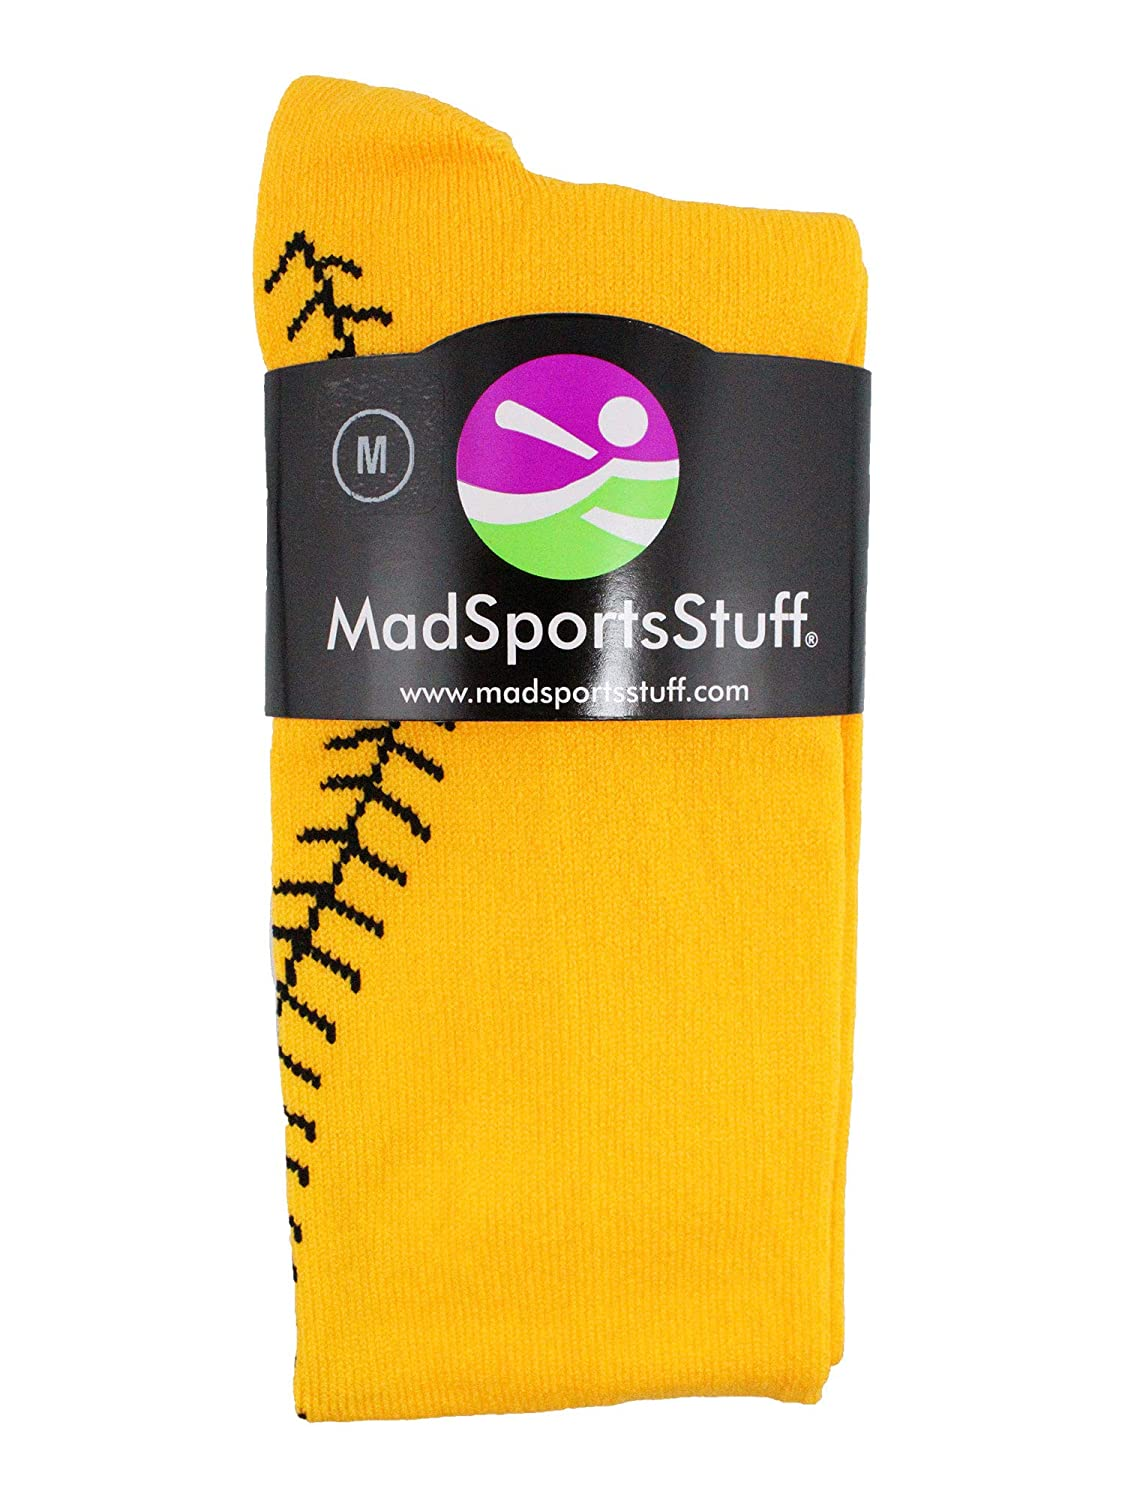 MadSportsStuff Softball Socks with Stitches Over The Calf Multiple Colors